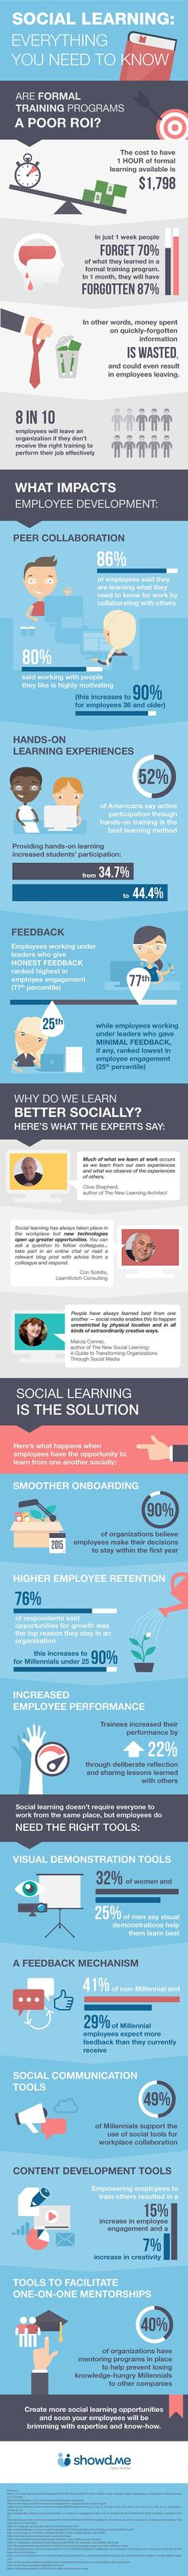 Why You Need to Rethink Your Training Program [INFOGRAPHIC] - Social-Hire